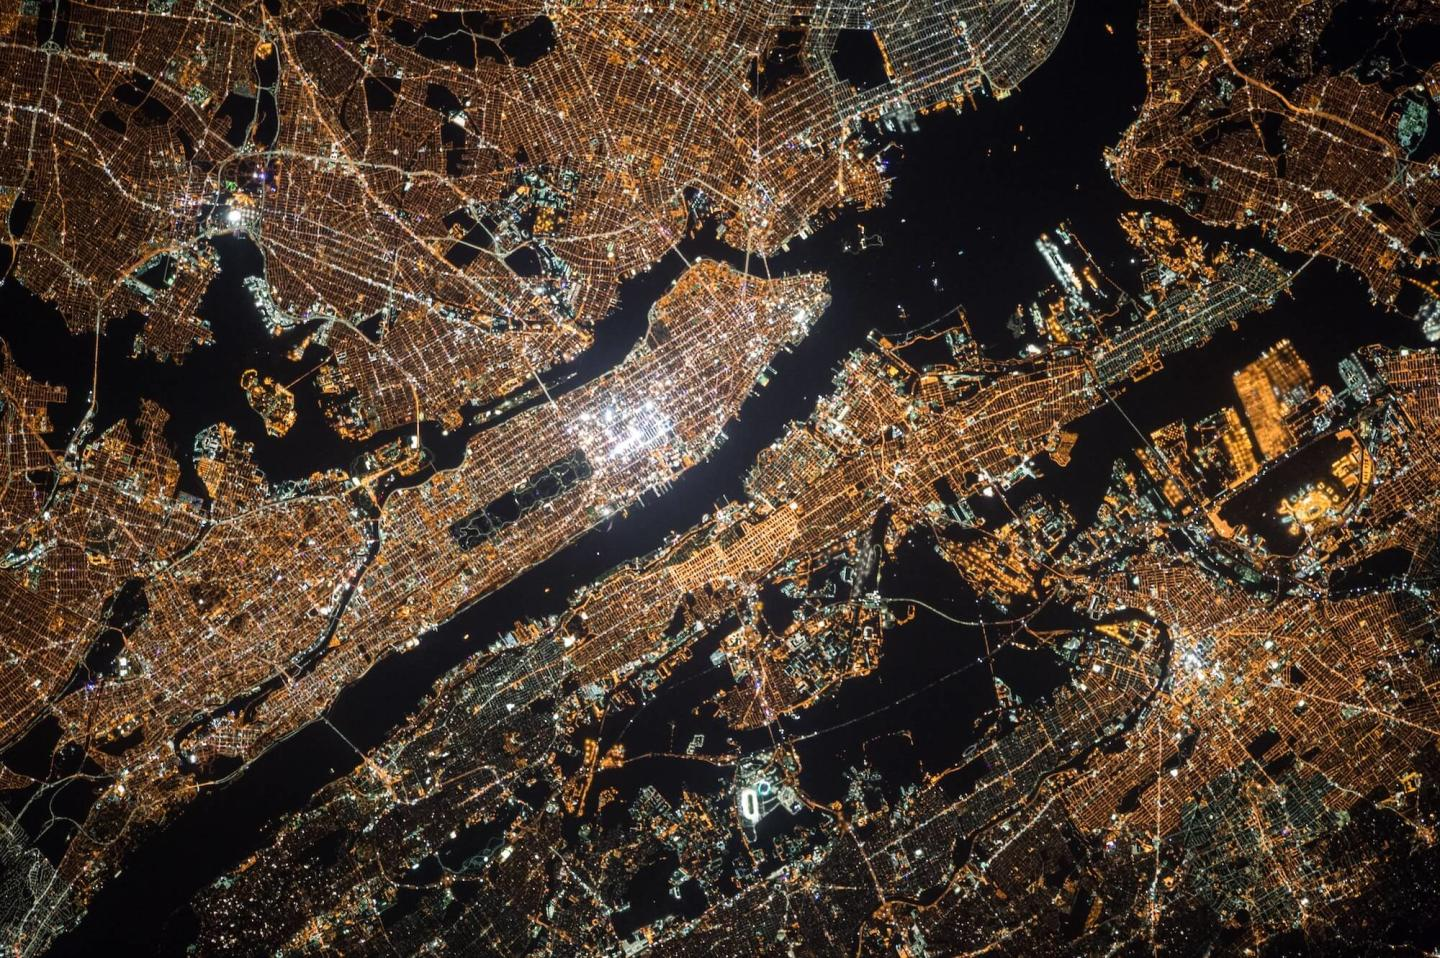 view of nyc at night with lights